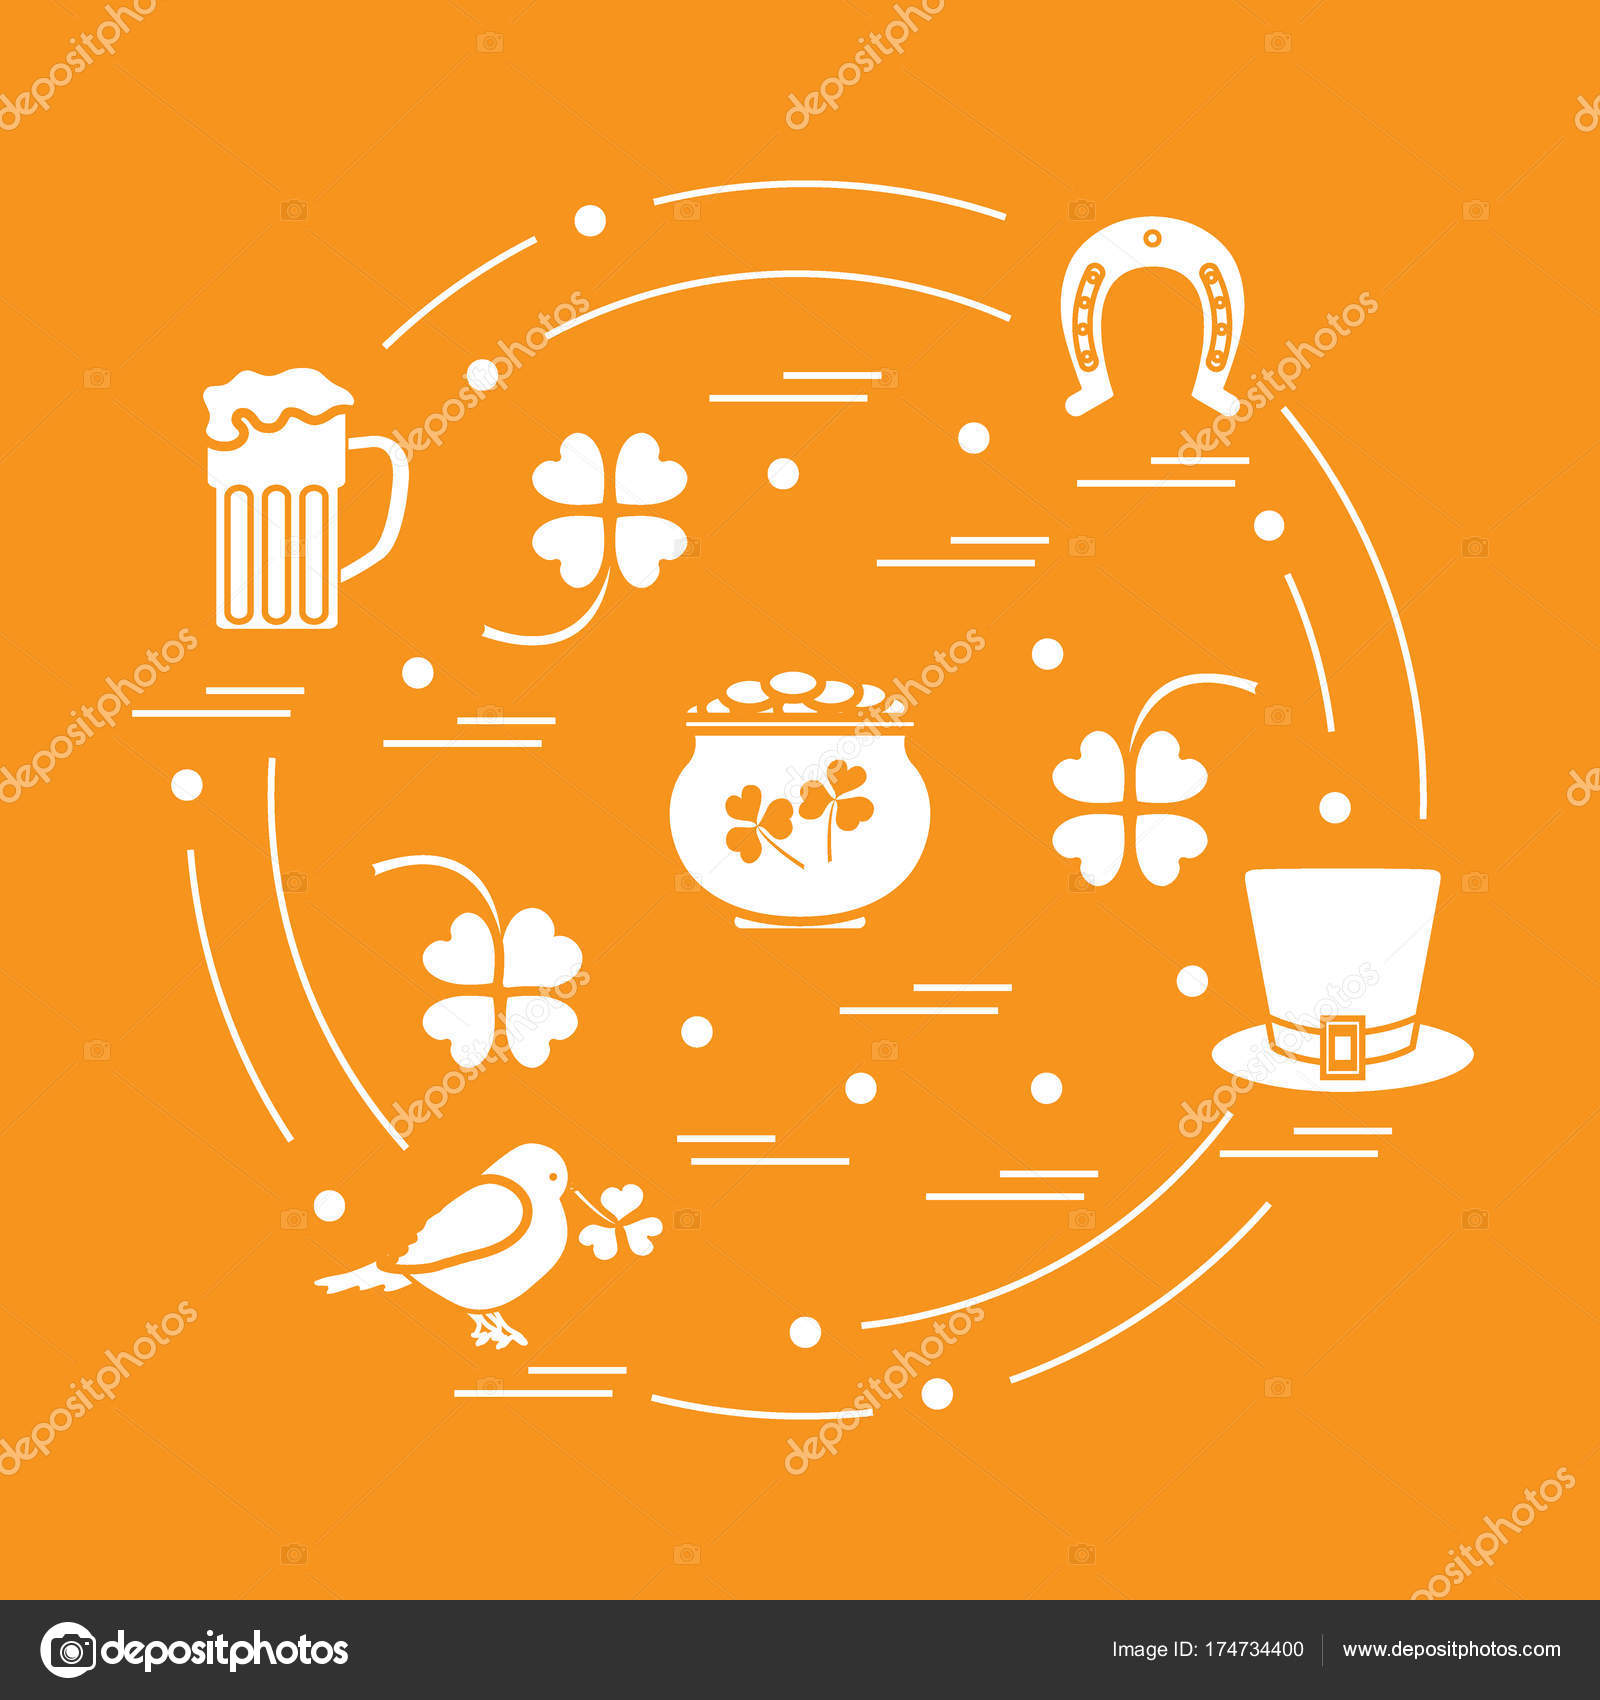 Cute Vector Illustration With Different Symbols For St Patrick